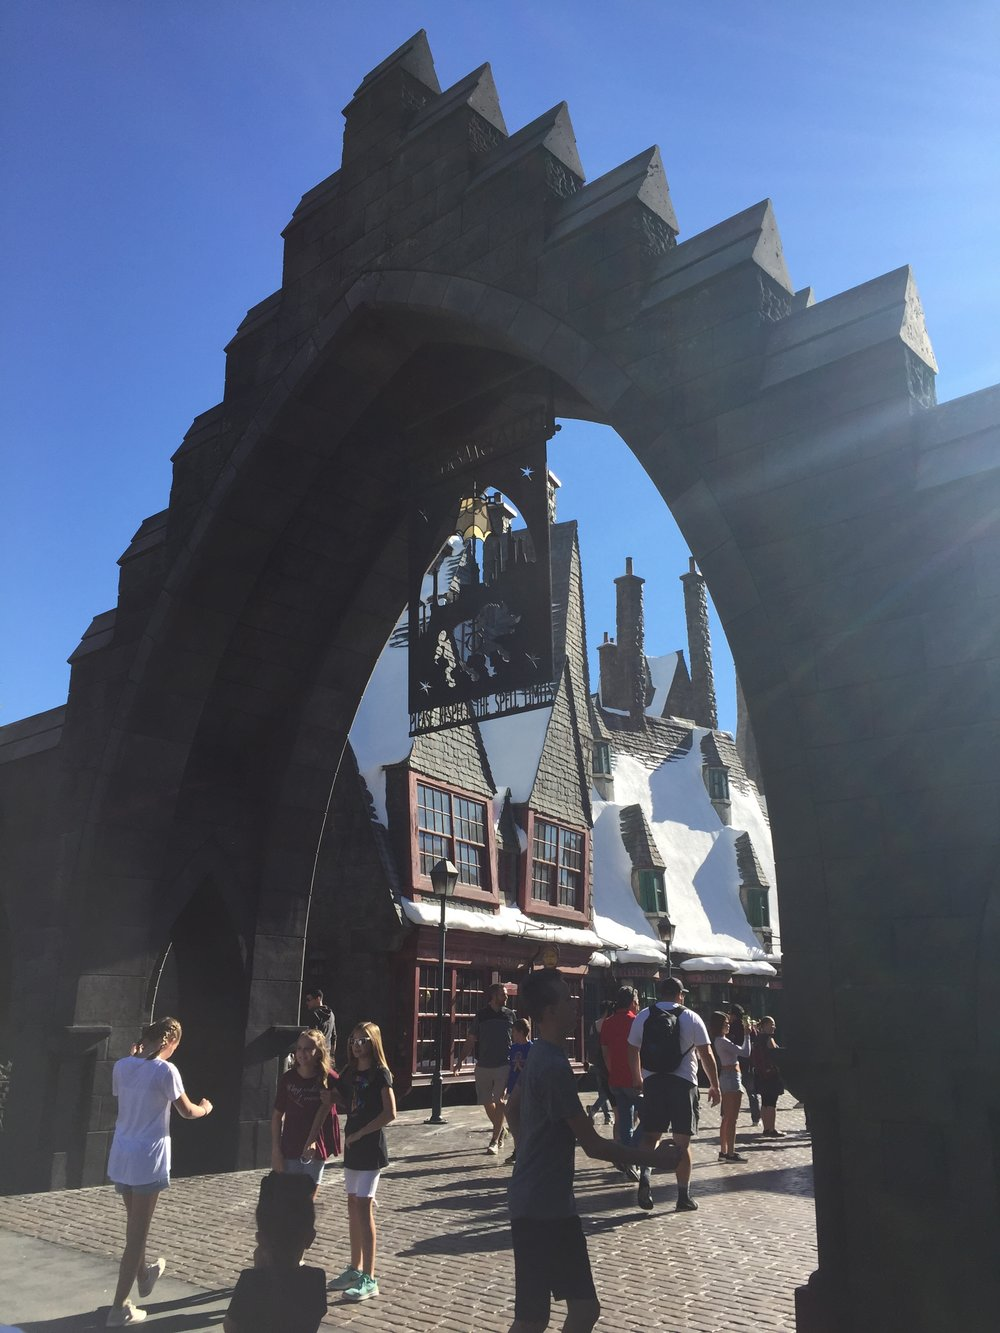 [image description: A large stone archway that serves as the entrance to Harry Potter World, aka a replica of Hogsmeade. There are tall, (fake) snow-covered shops in the background and a bunch of tourists gathering around the entrance.]